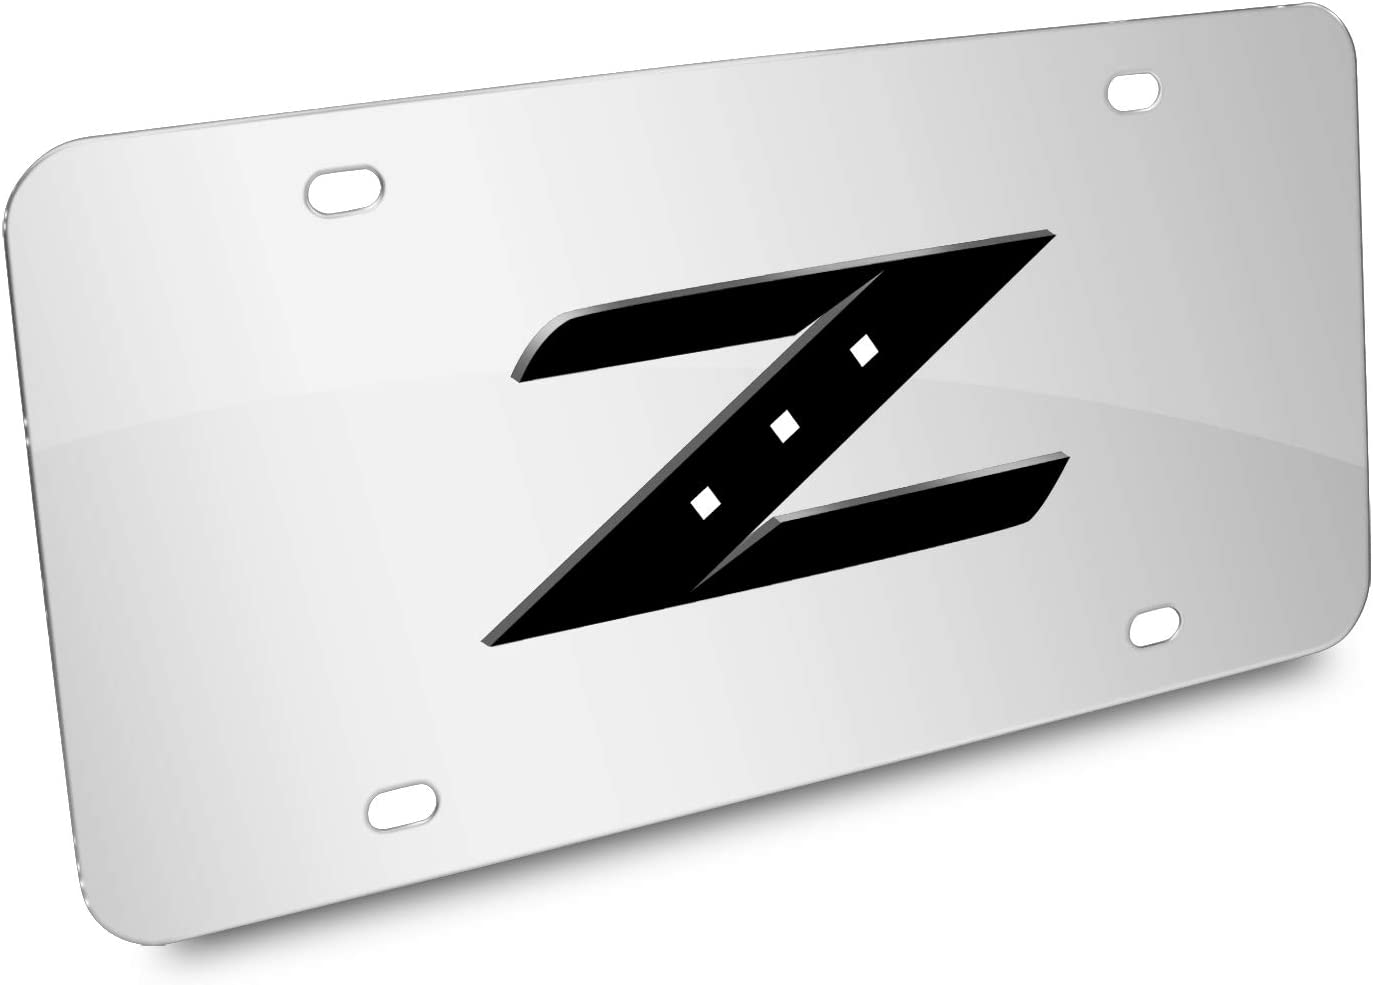 Licensed Black License Plate AUGD8079 Laser Etched for Nissan 350Z